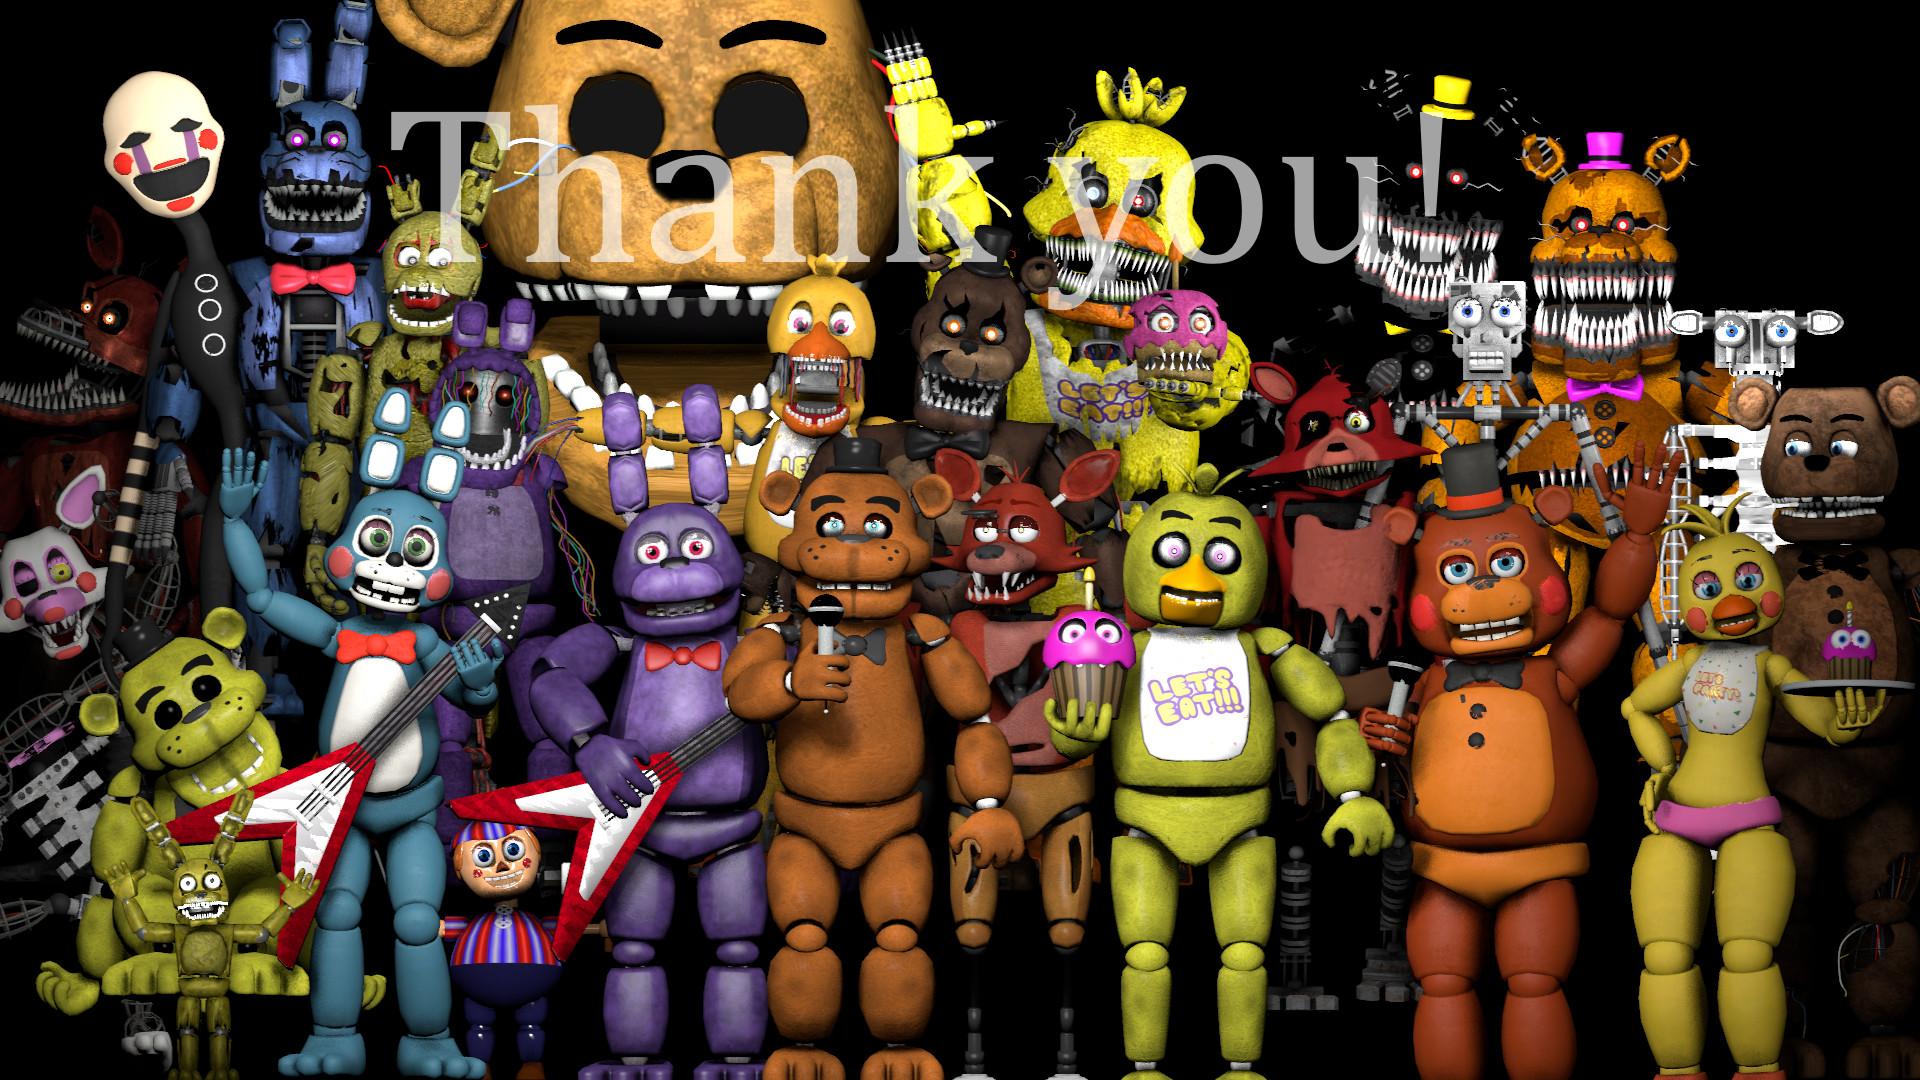 HD Quality Creative FNAF Thank You Pictures, 1920×1080, Deandrea Perras